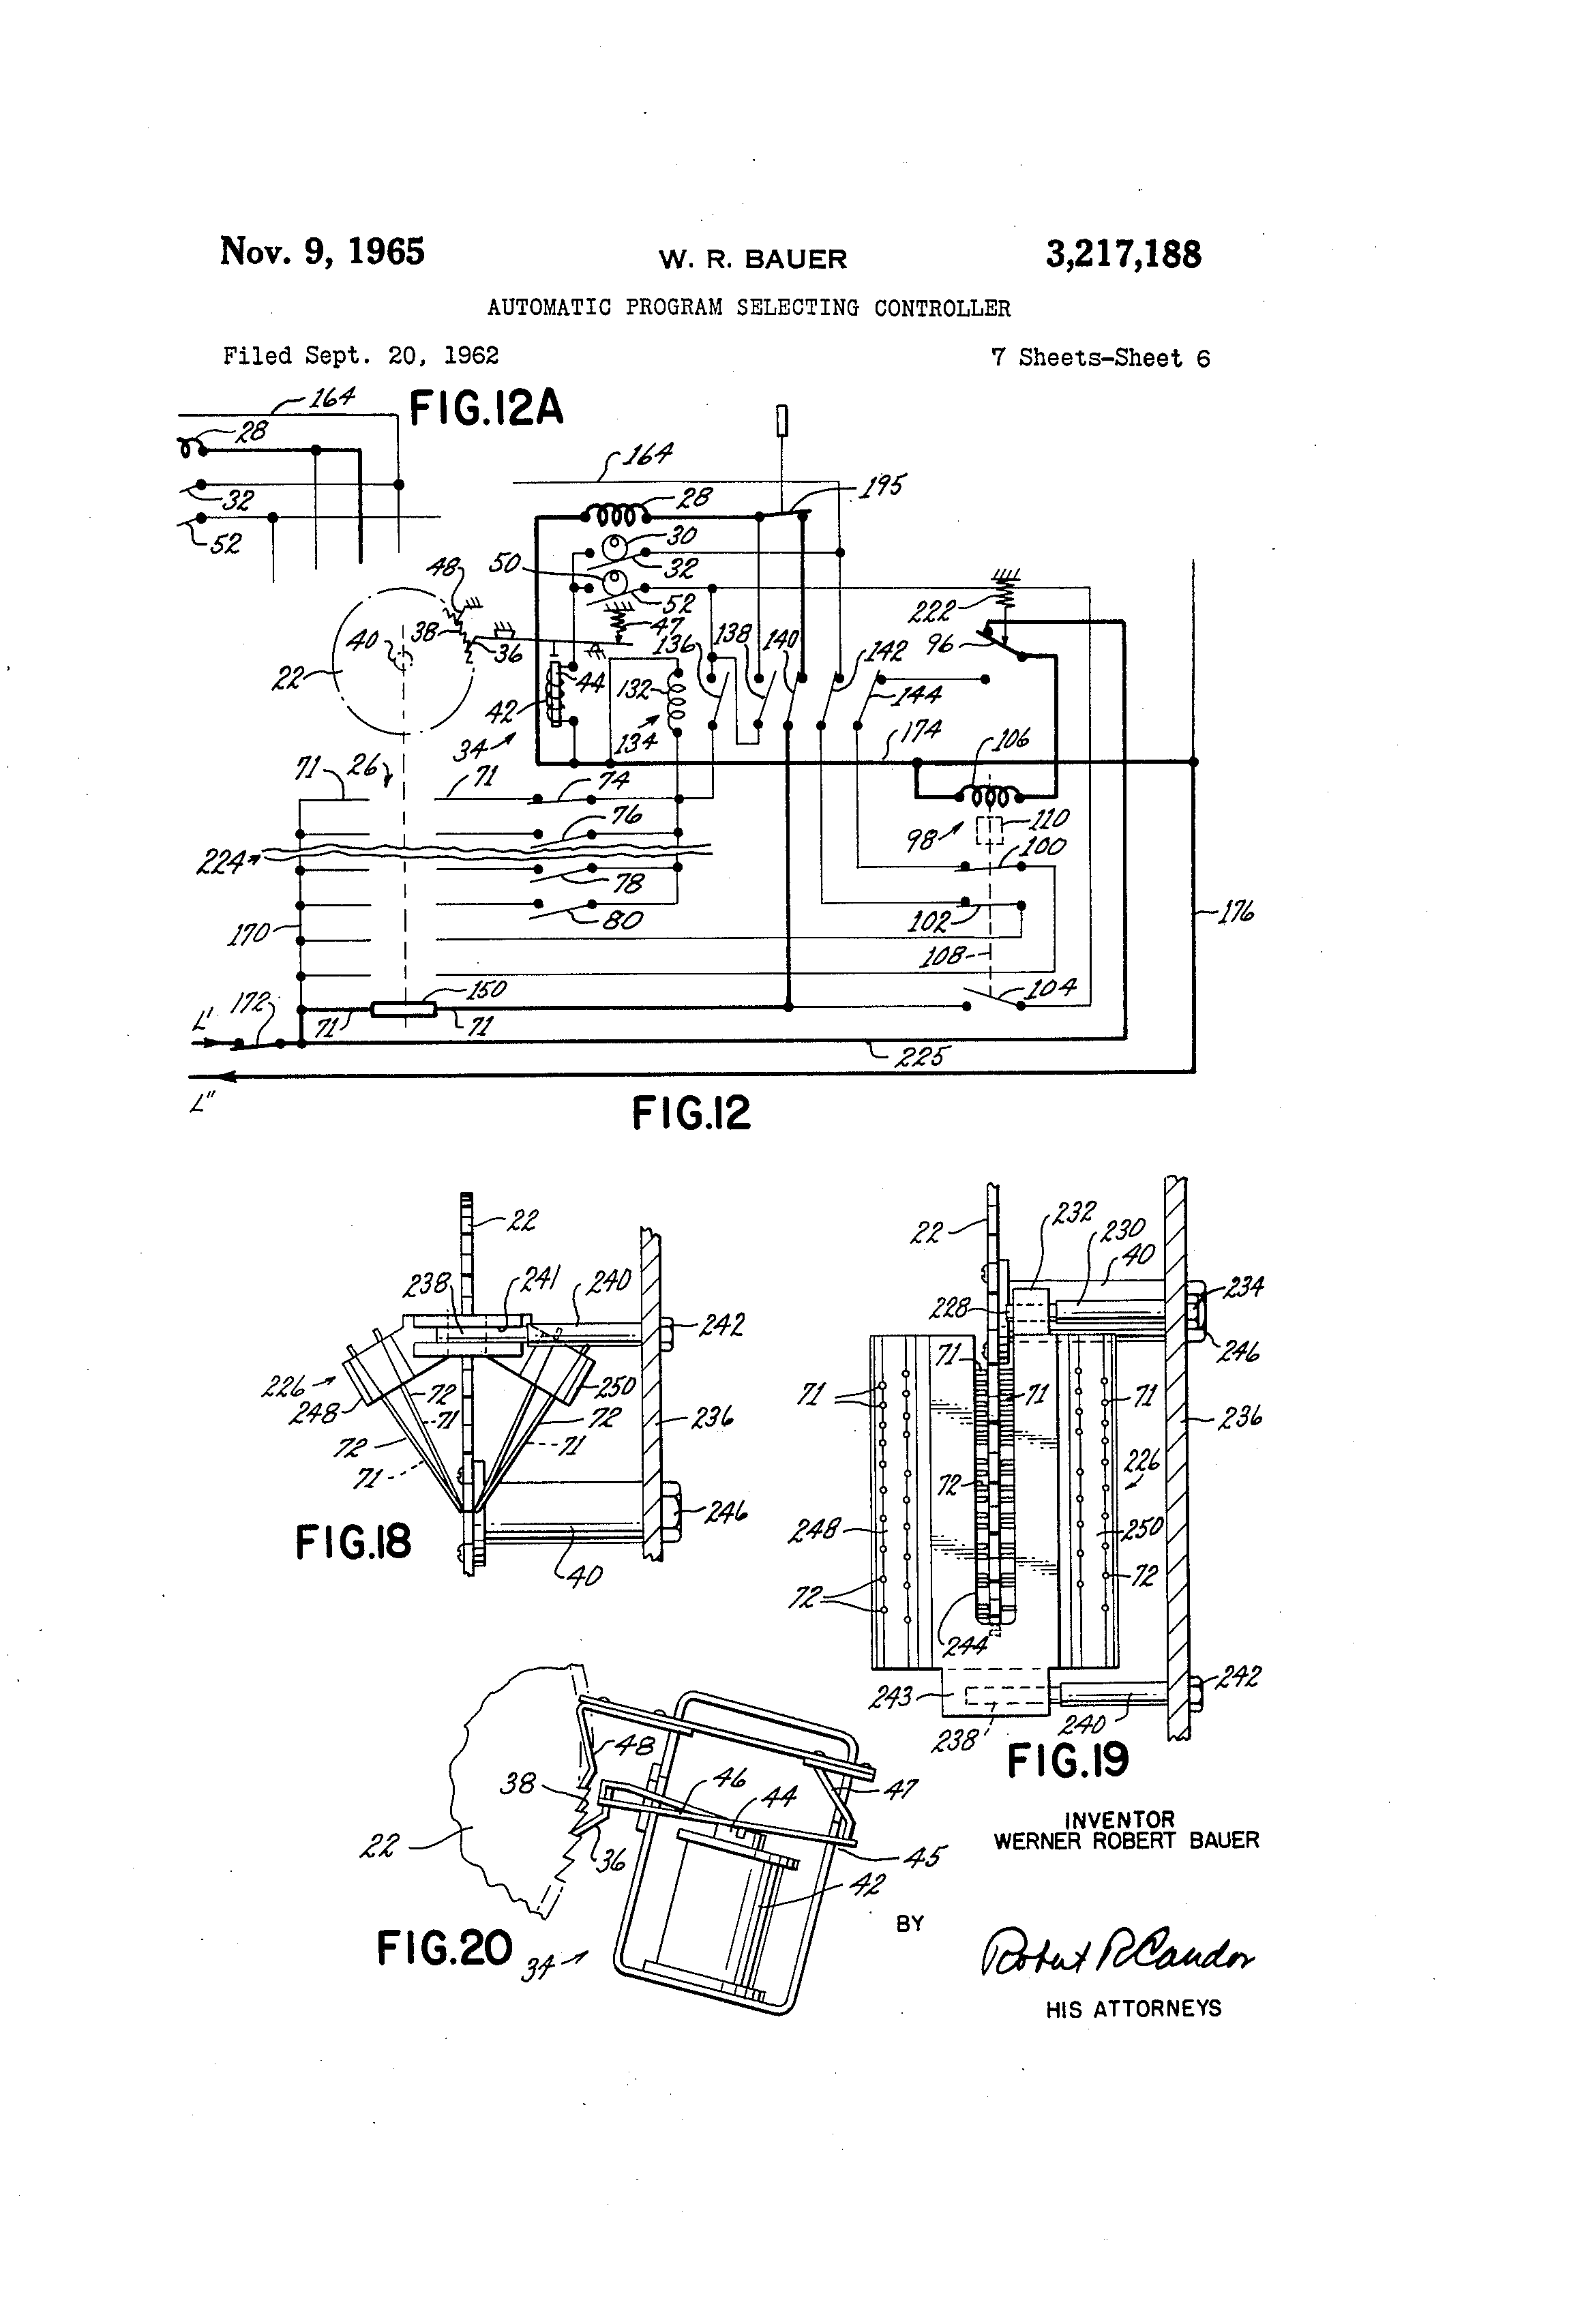 US3217188 5 diagrams 1000496 rugged ptt wiring diagram aeroelectric u 94a u wiring diagram at reclaimingppi.co